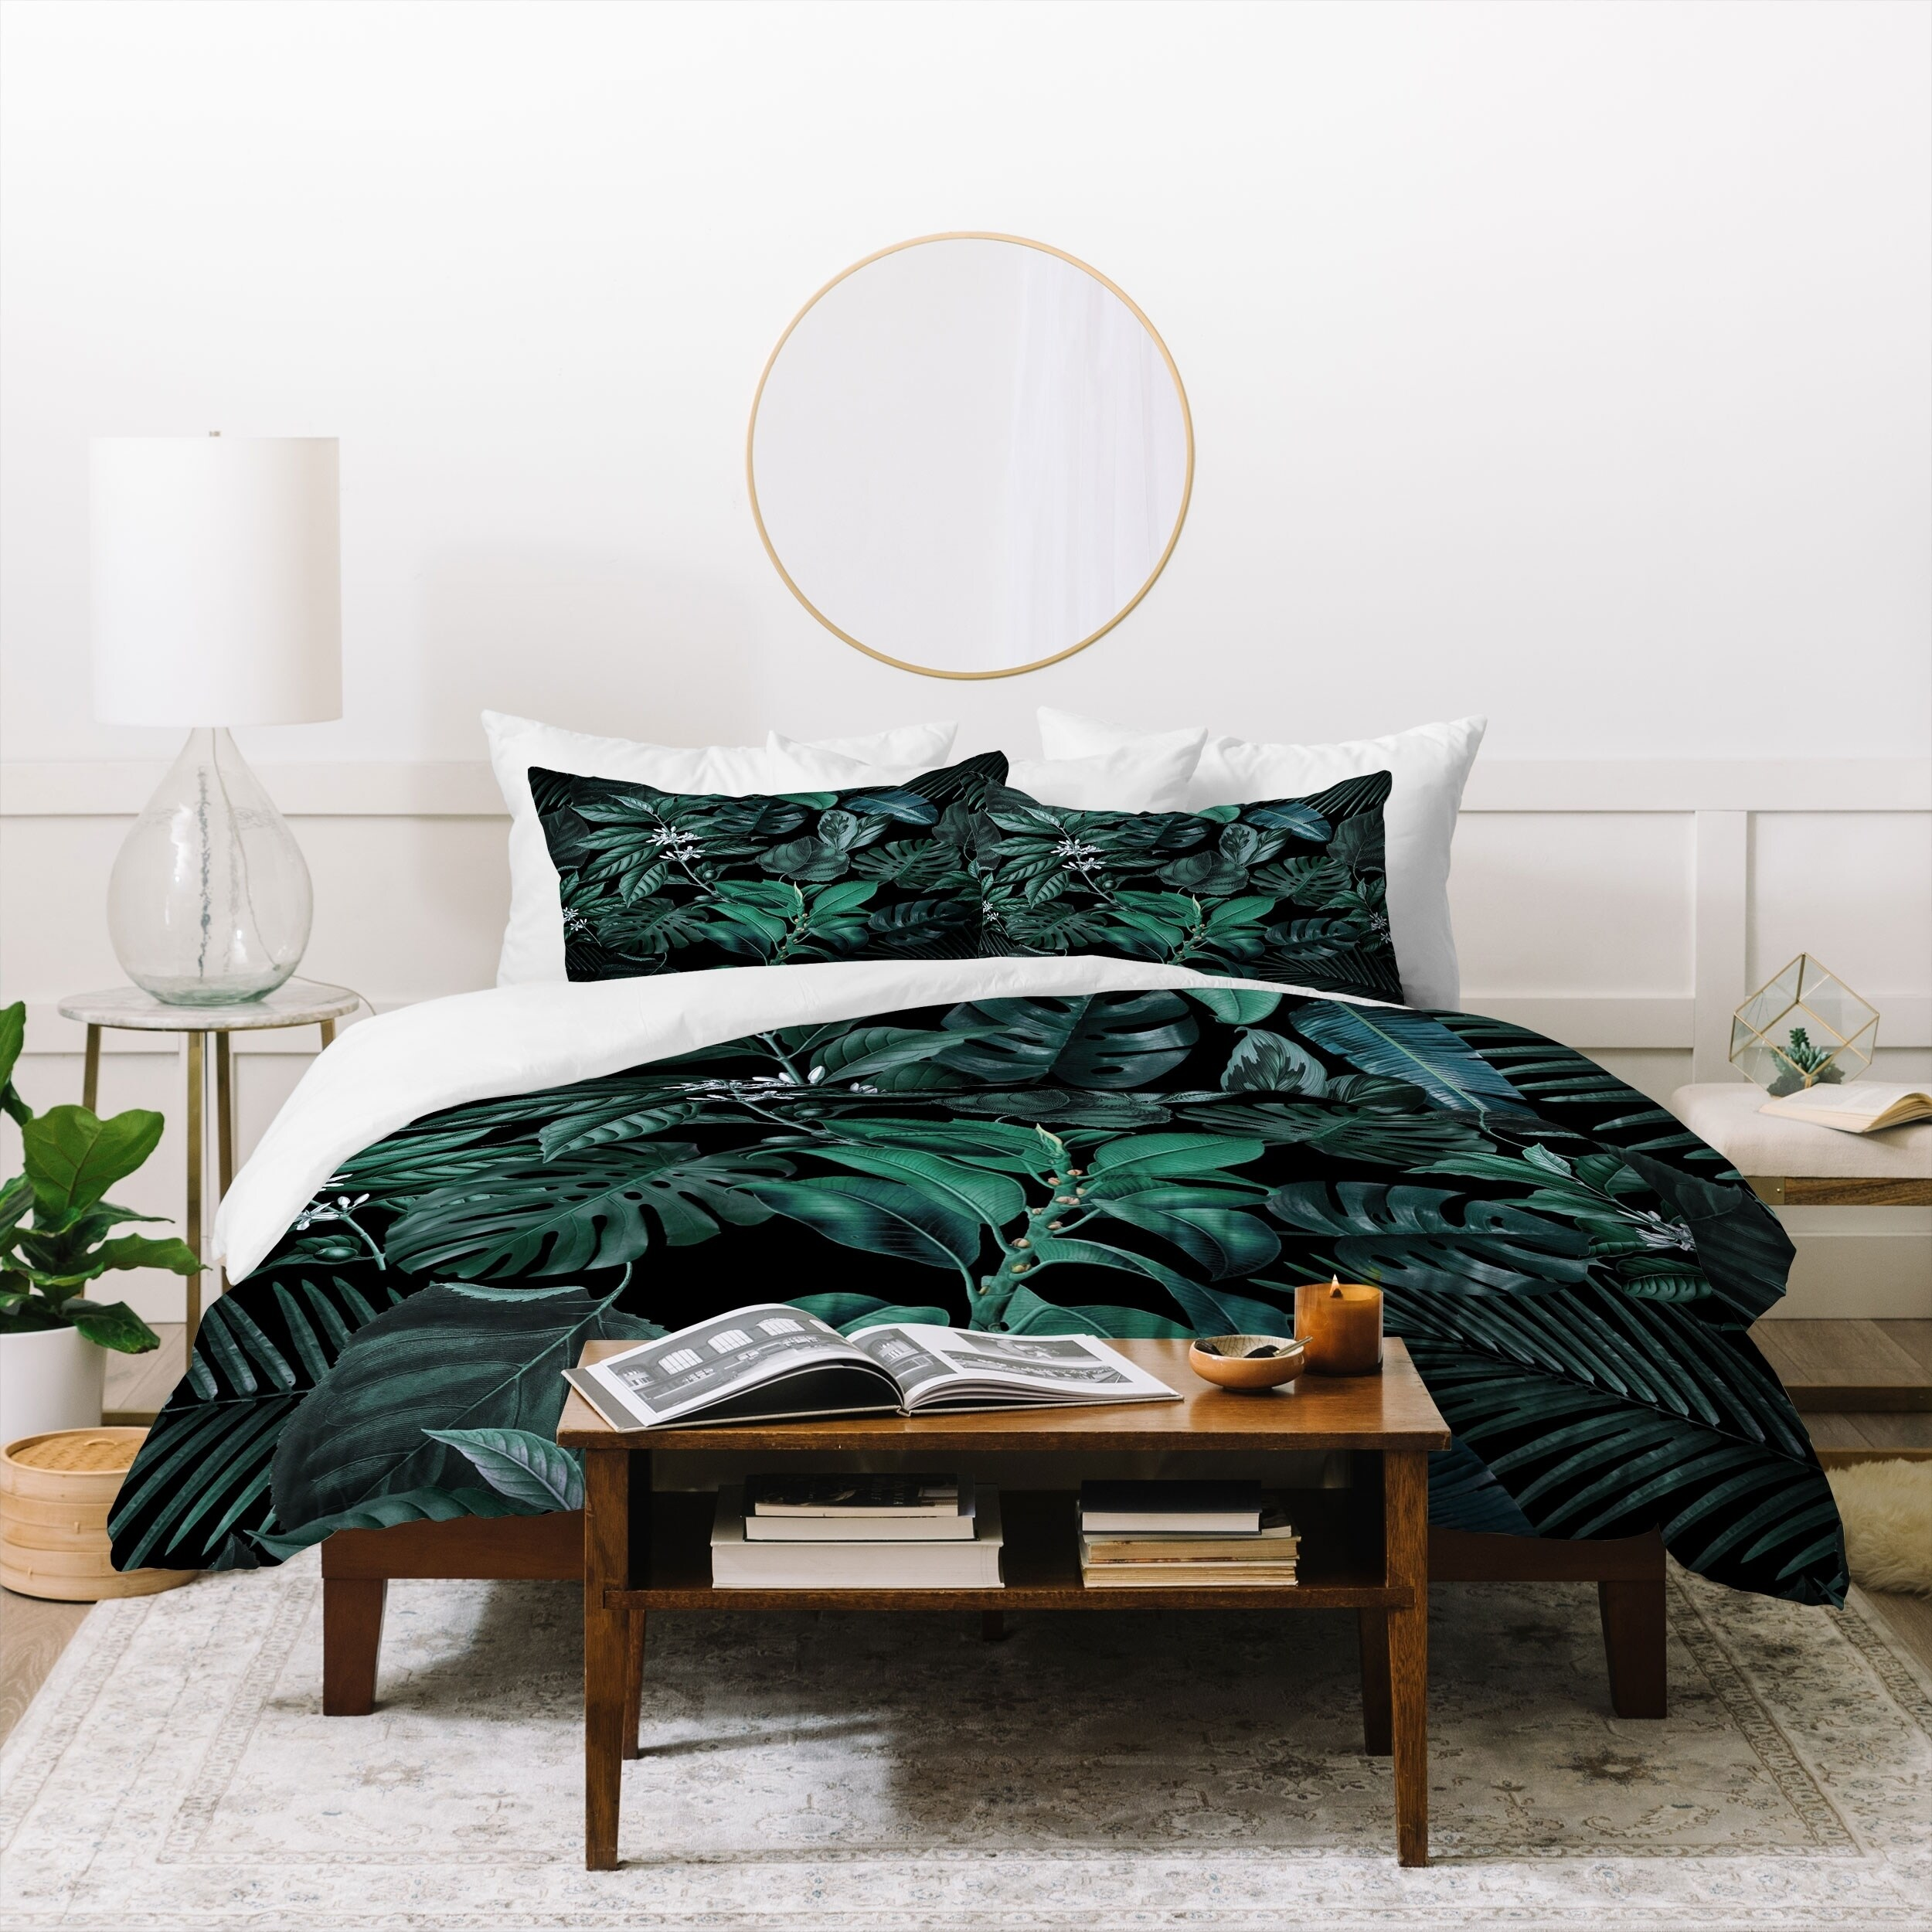 Deny Designs Deep Green Jungle 3 Piece Duvet Cover Set On Sale Overstock 29812389